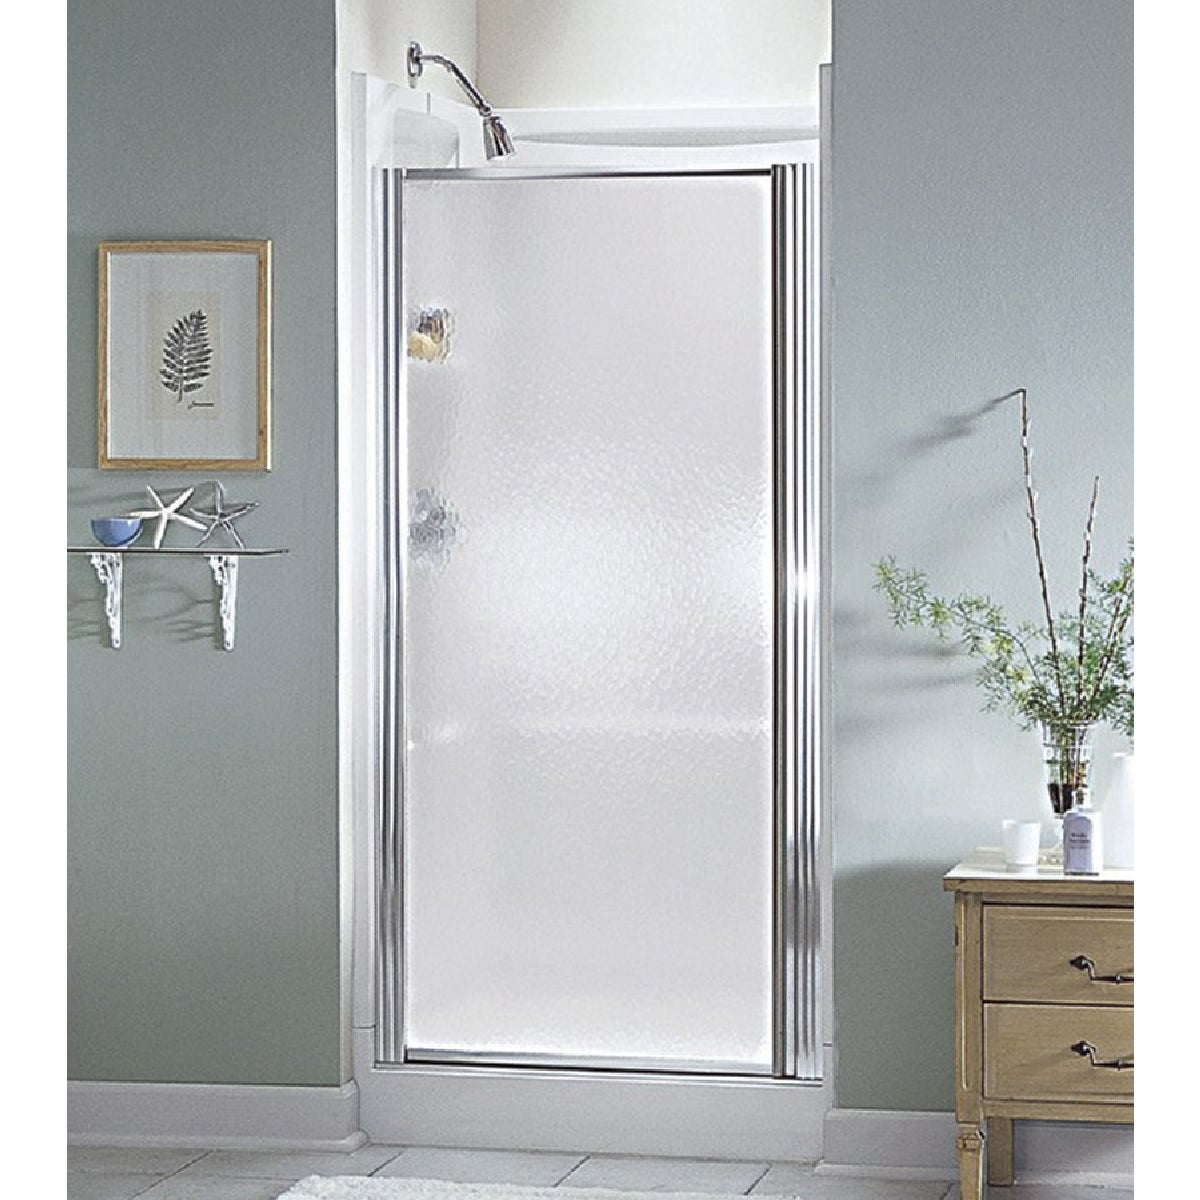 Sterling SILVER HINGED SHWR DOOR 950C-32S